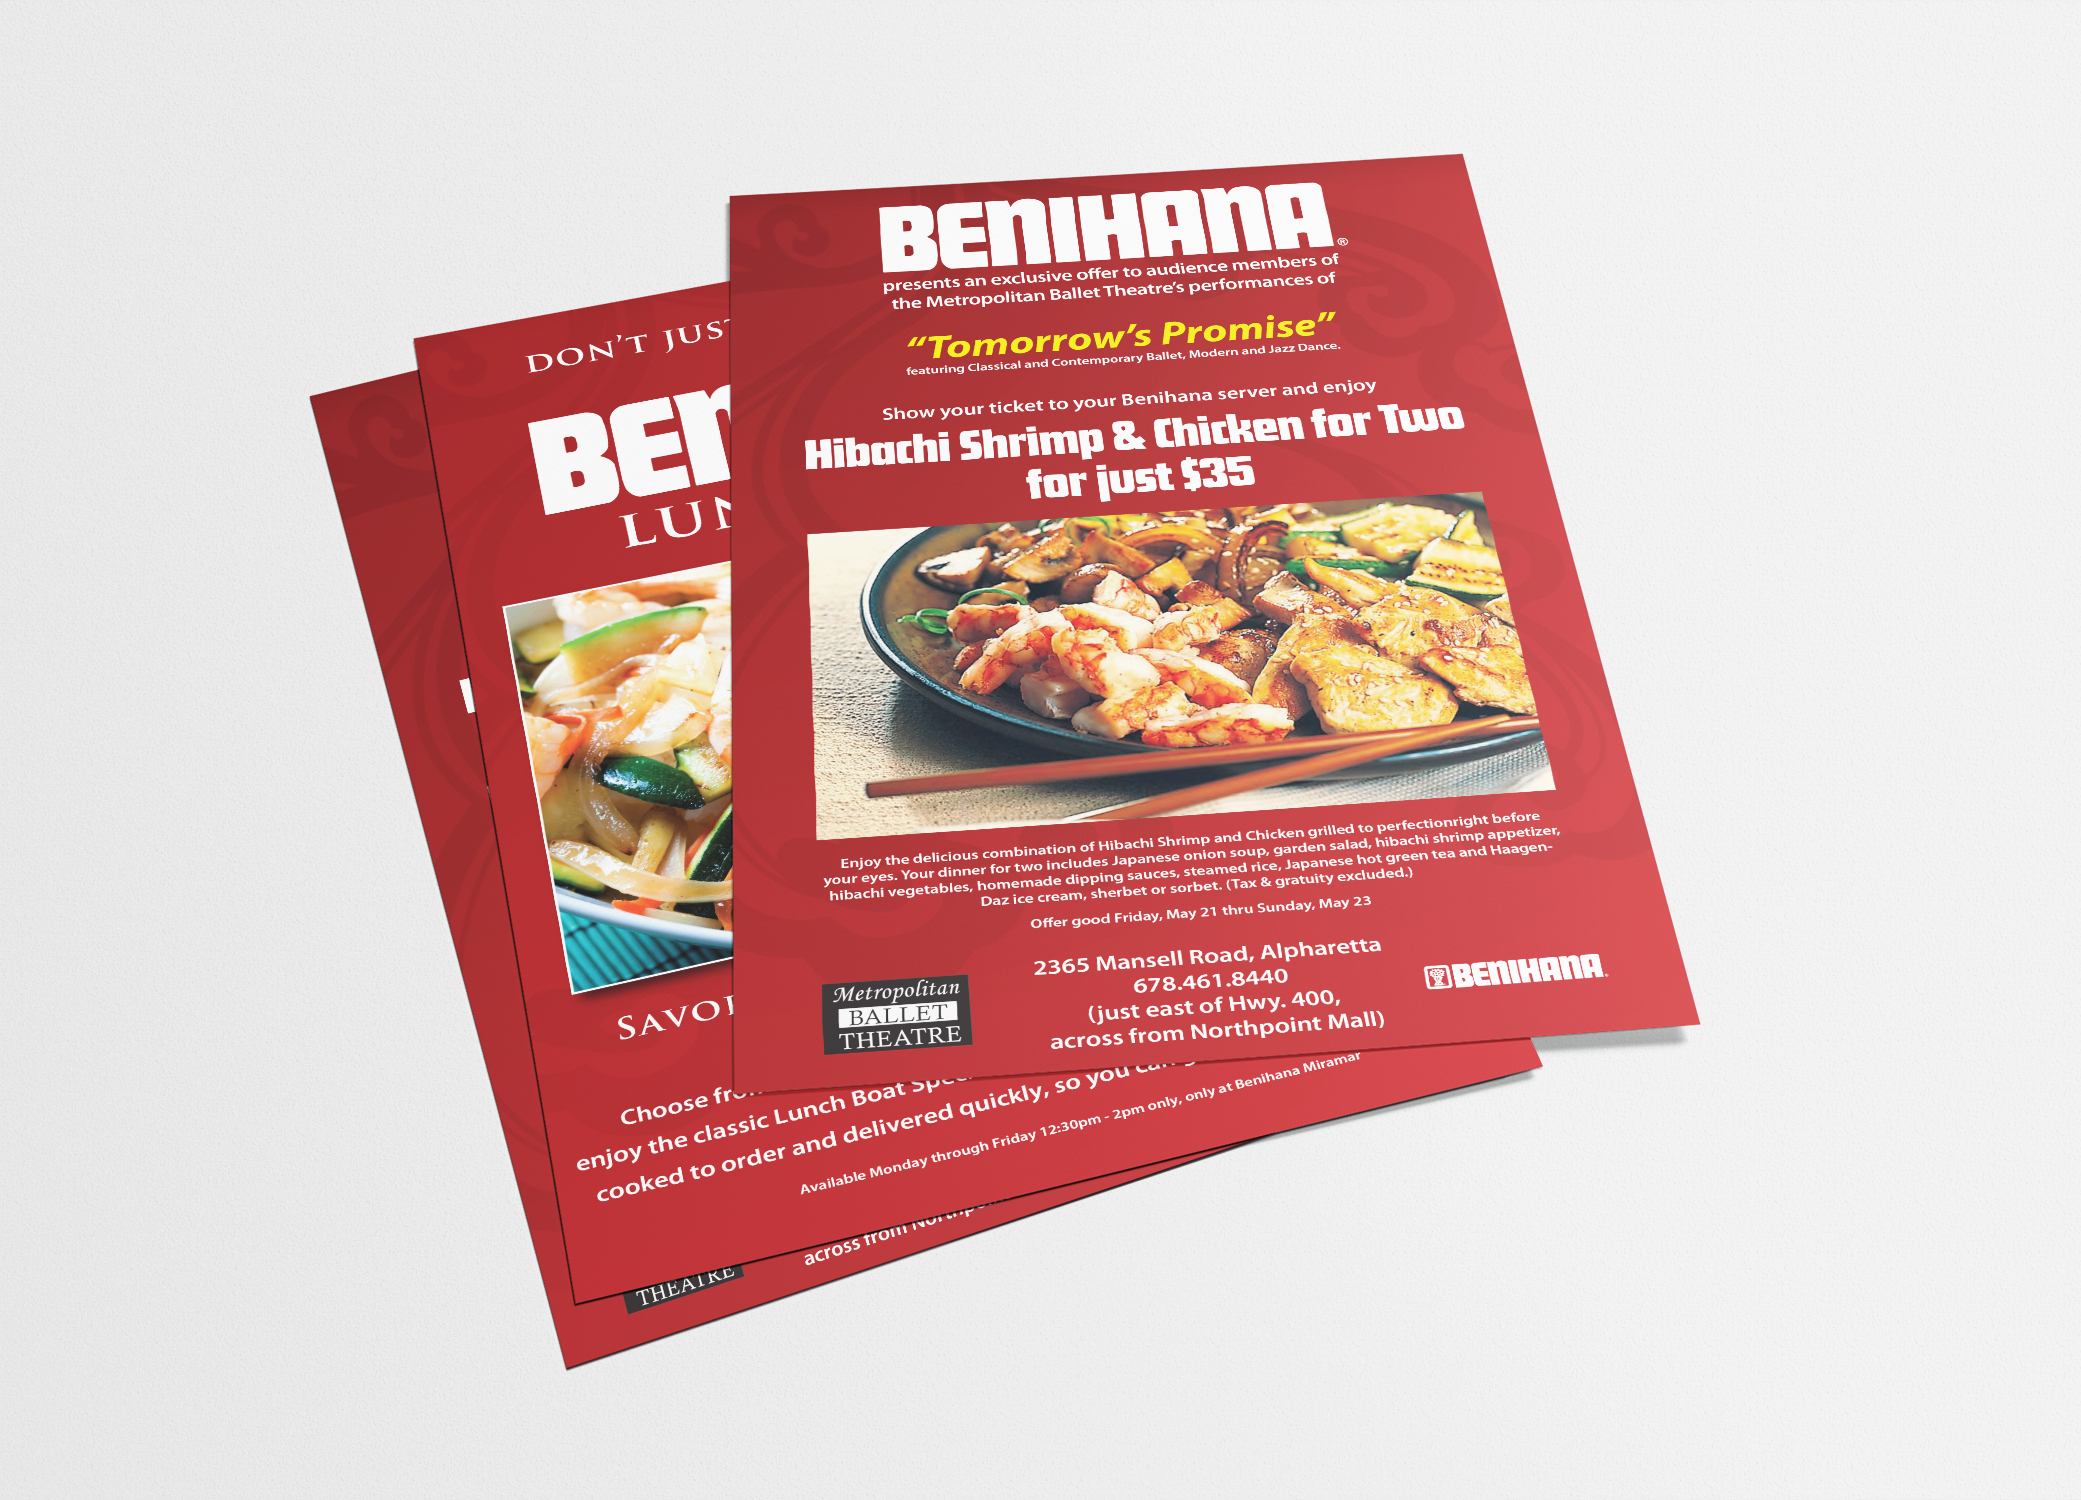 Benihana food brand design red poster featuring the restaurant's exclusive entree against grey backdrop.